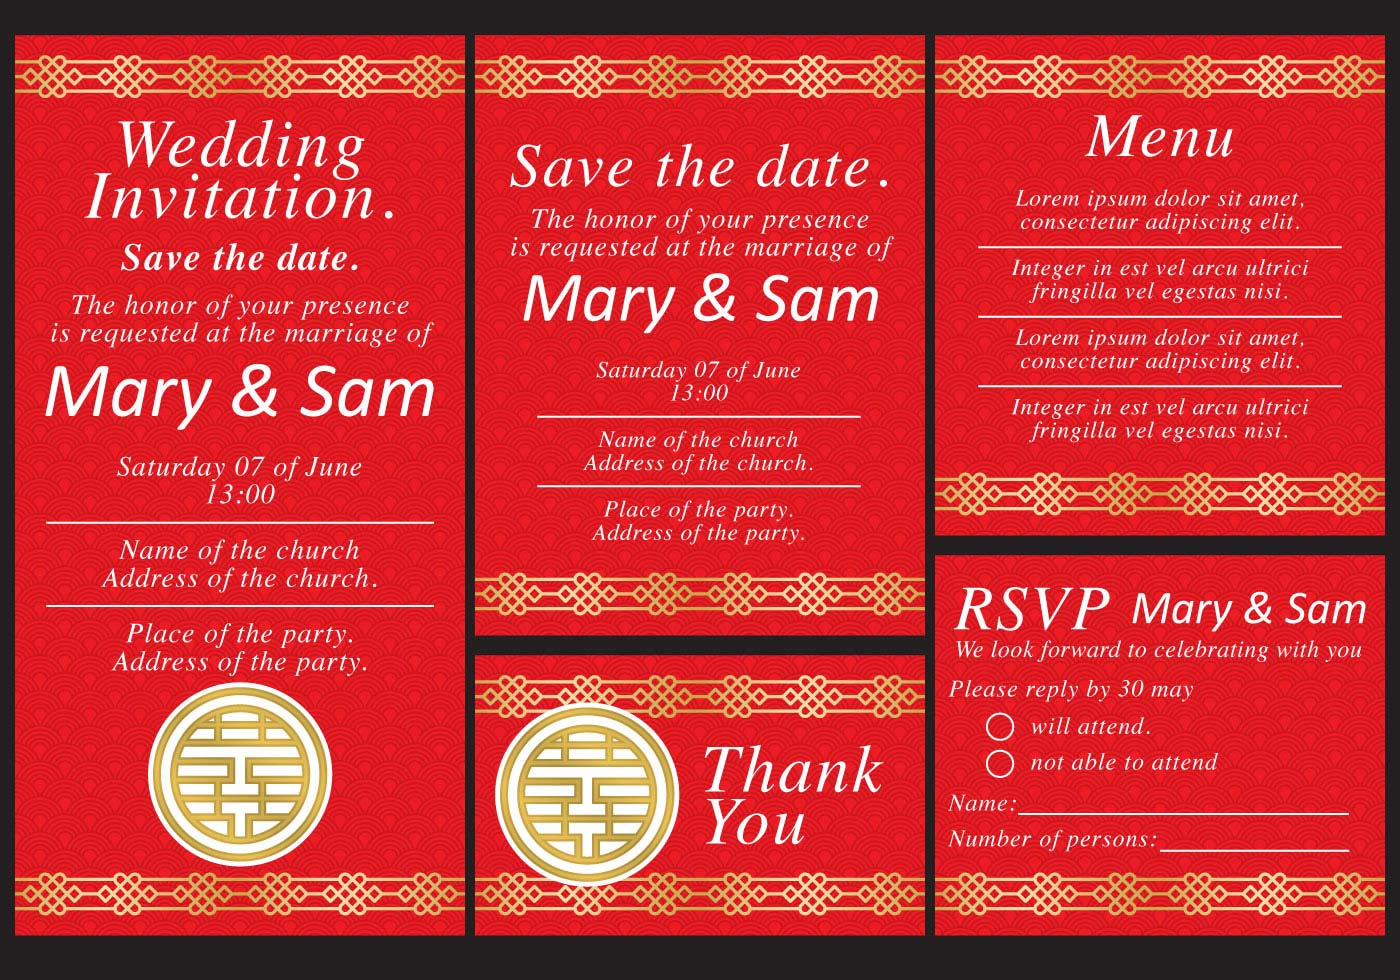 Chinese Wedding Templates - Download Free Vector Art, Stock Graphics ...